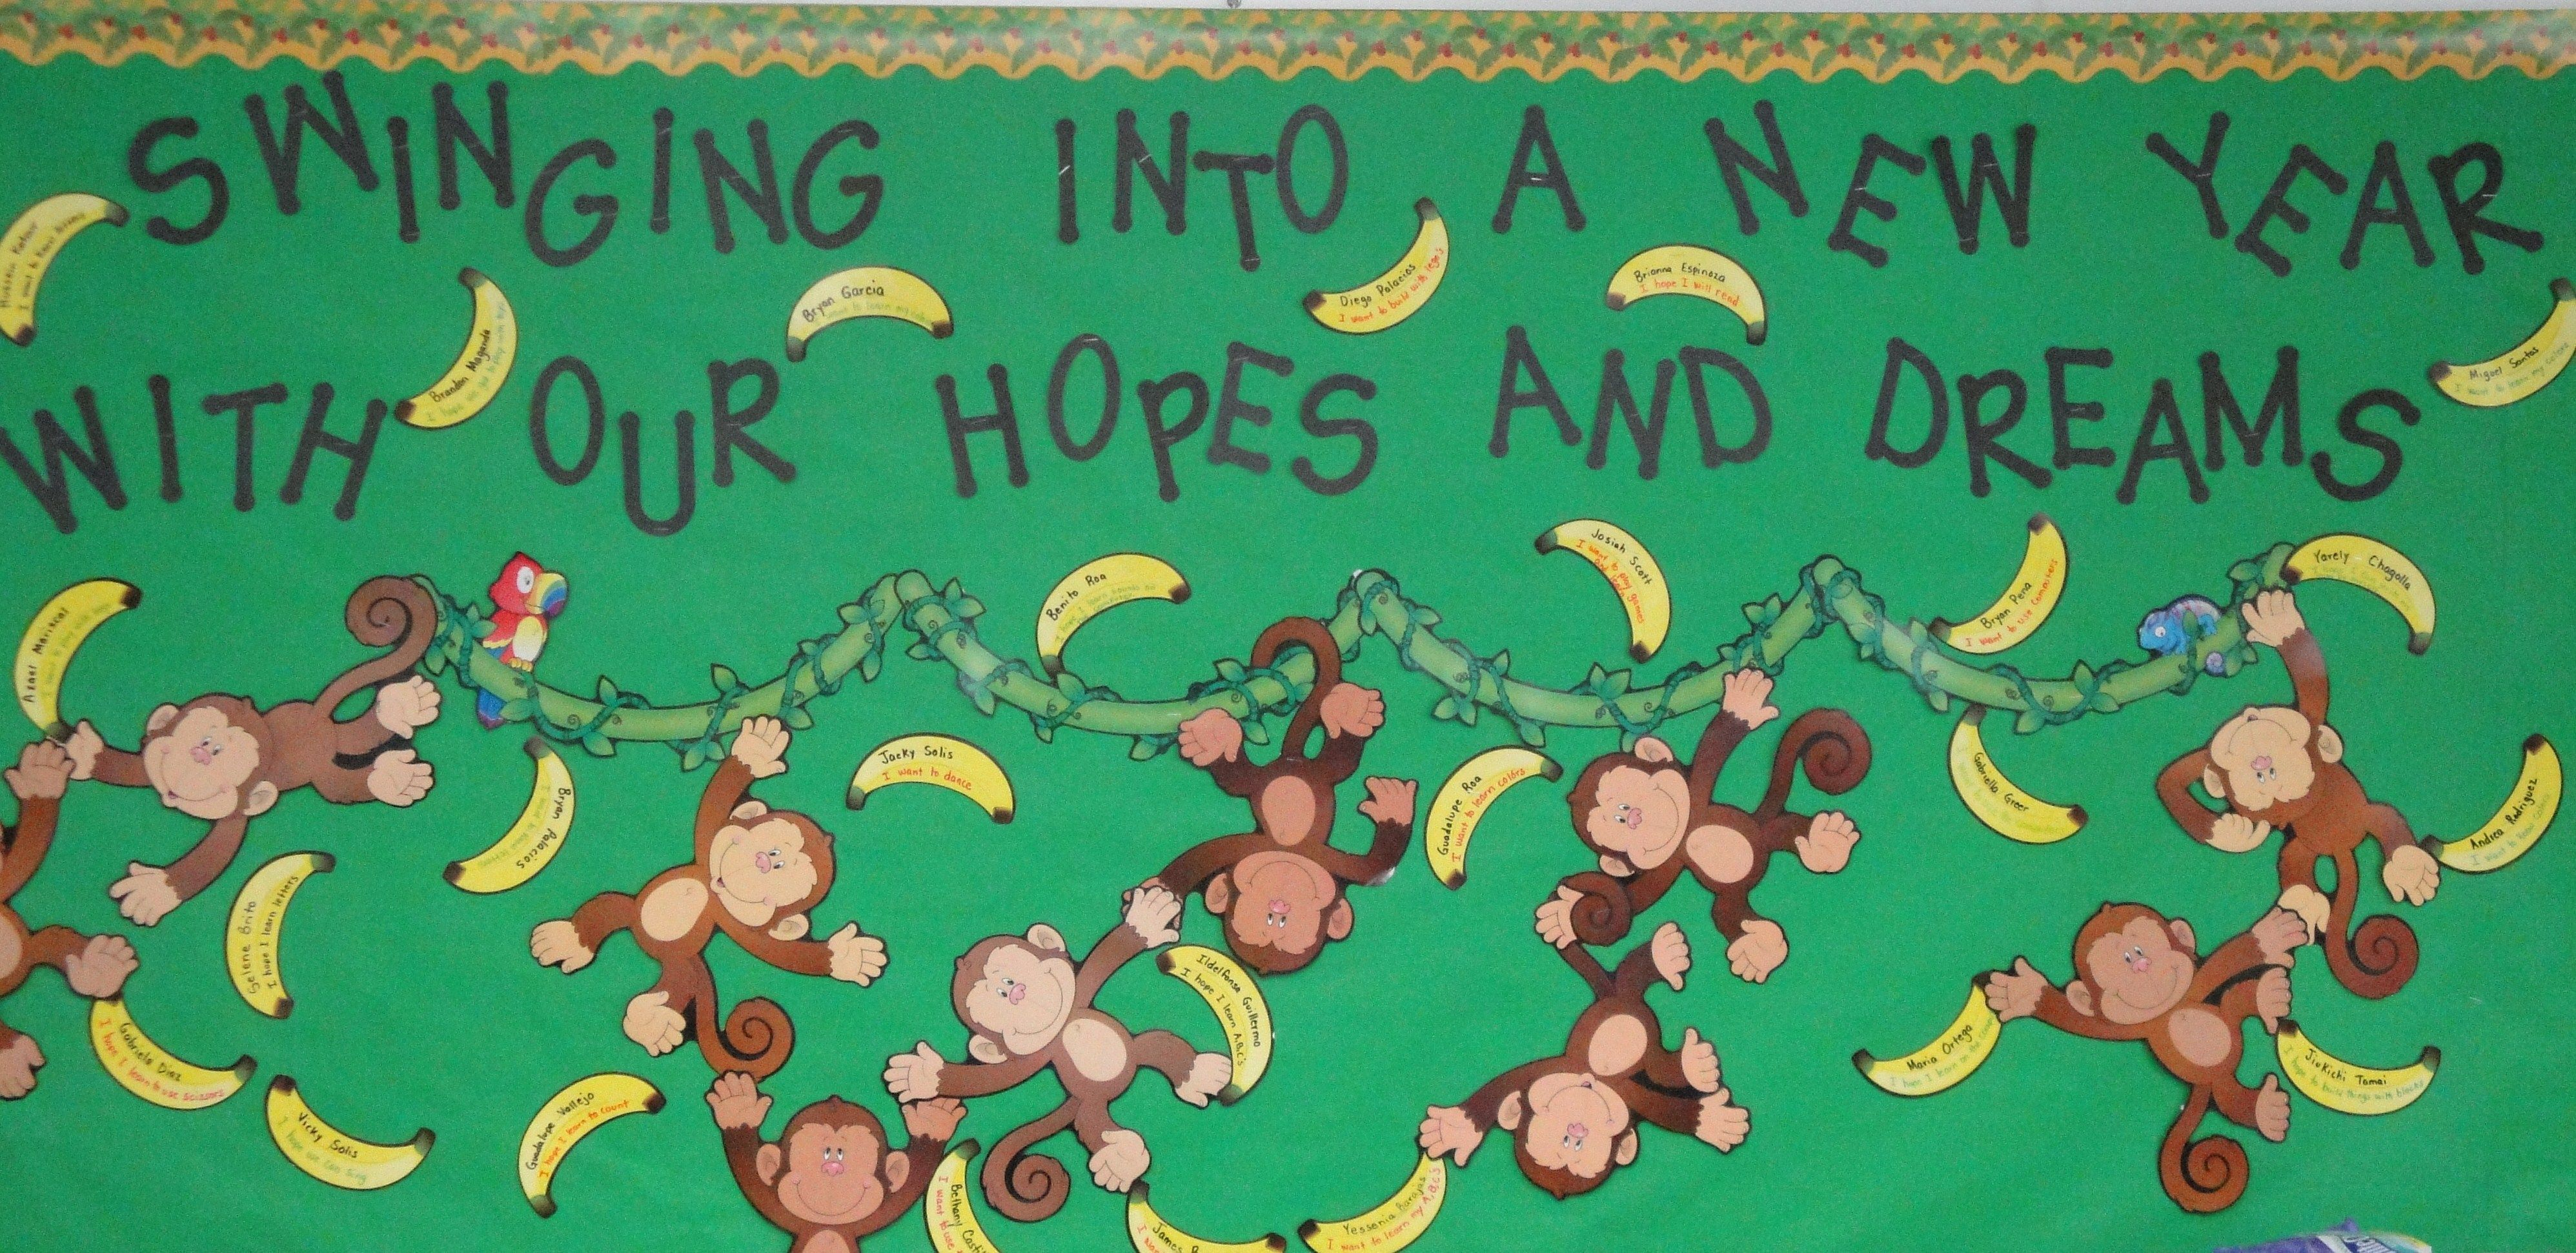 Happy New Year Bulletin Boards Ideas For High School Swinging Into A New Year With Our Hopes And Dreams Bullet Bulletin Boards Responsive Classroom Bulletin